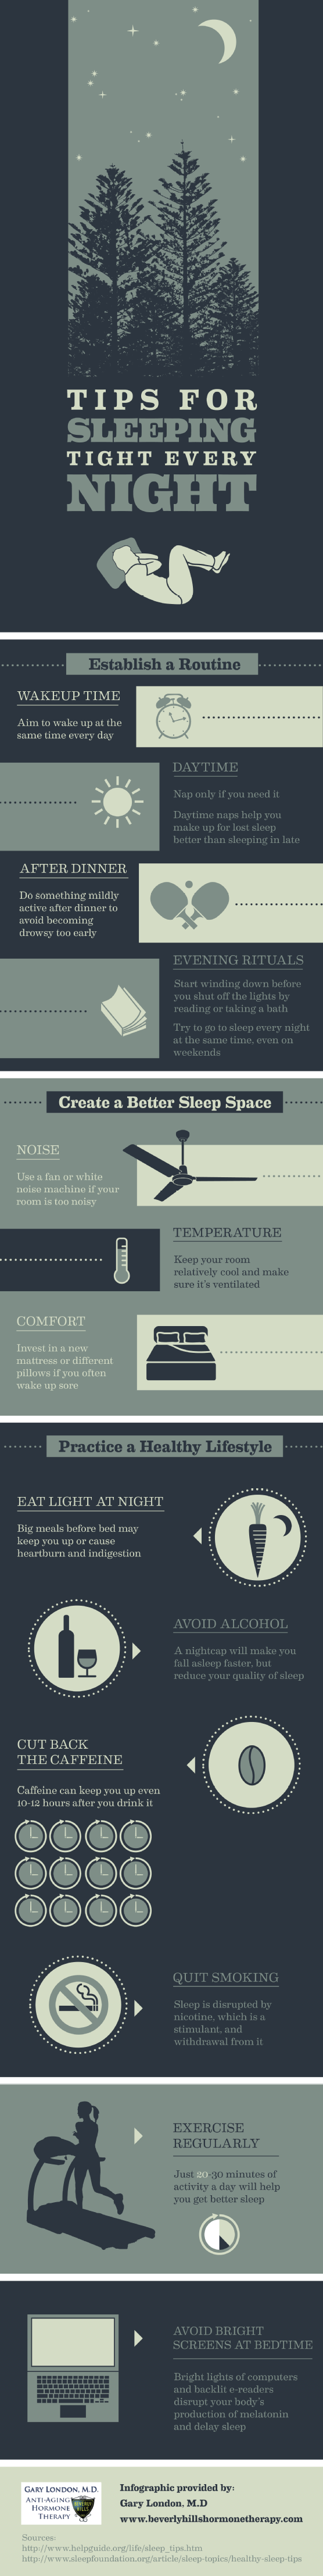 Infographic: Tips for Sleeping Tight Every Night [Infographic]